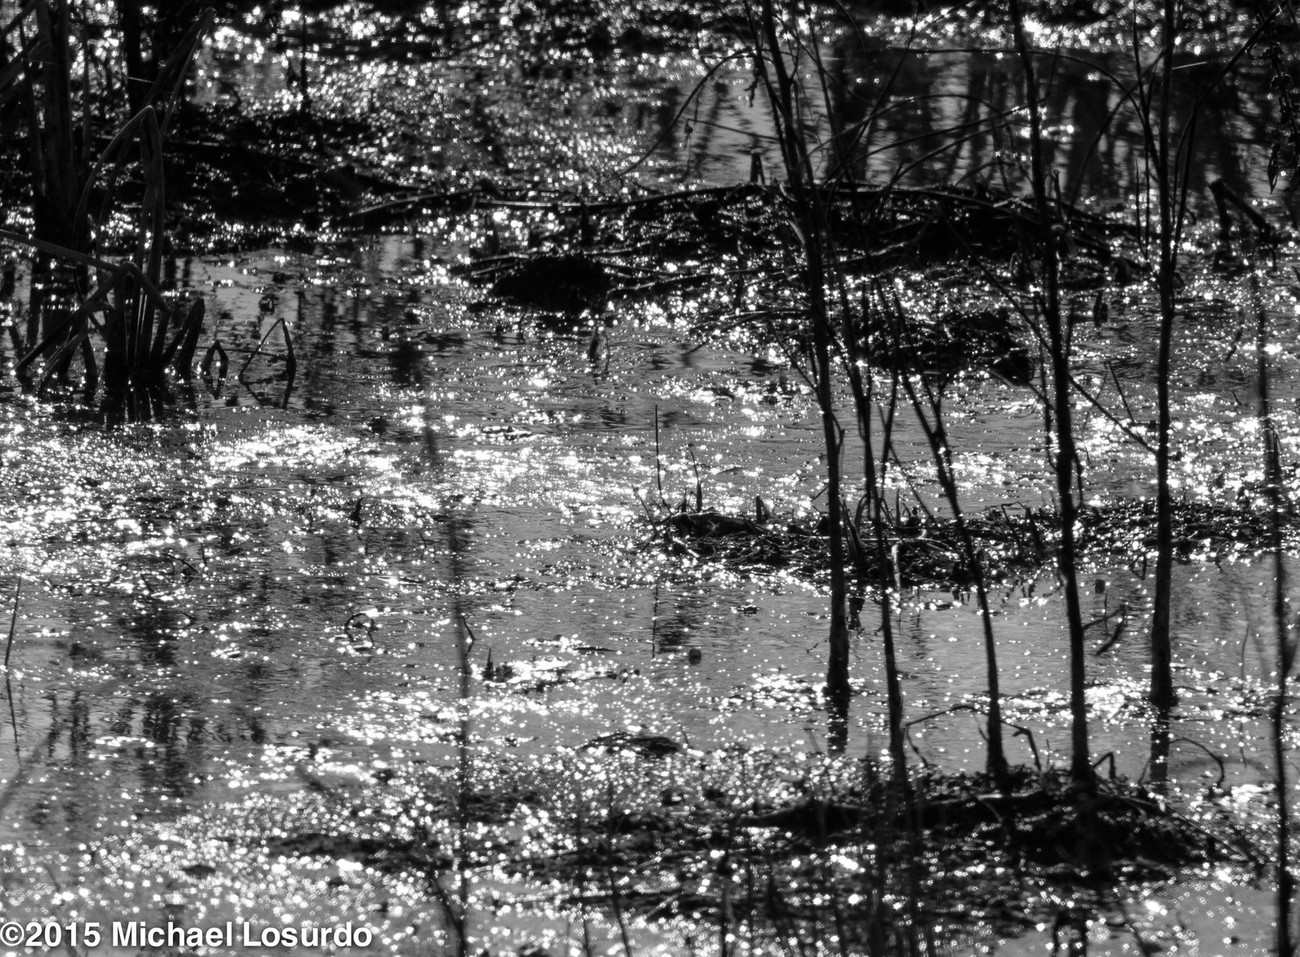 I just like water reflections